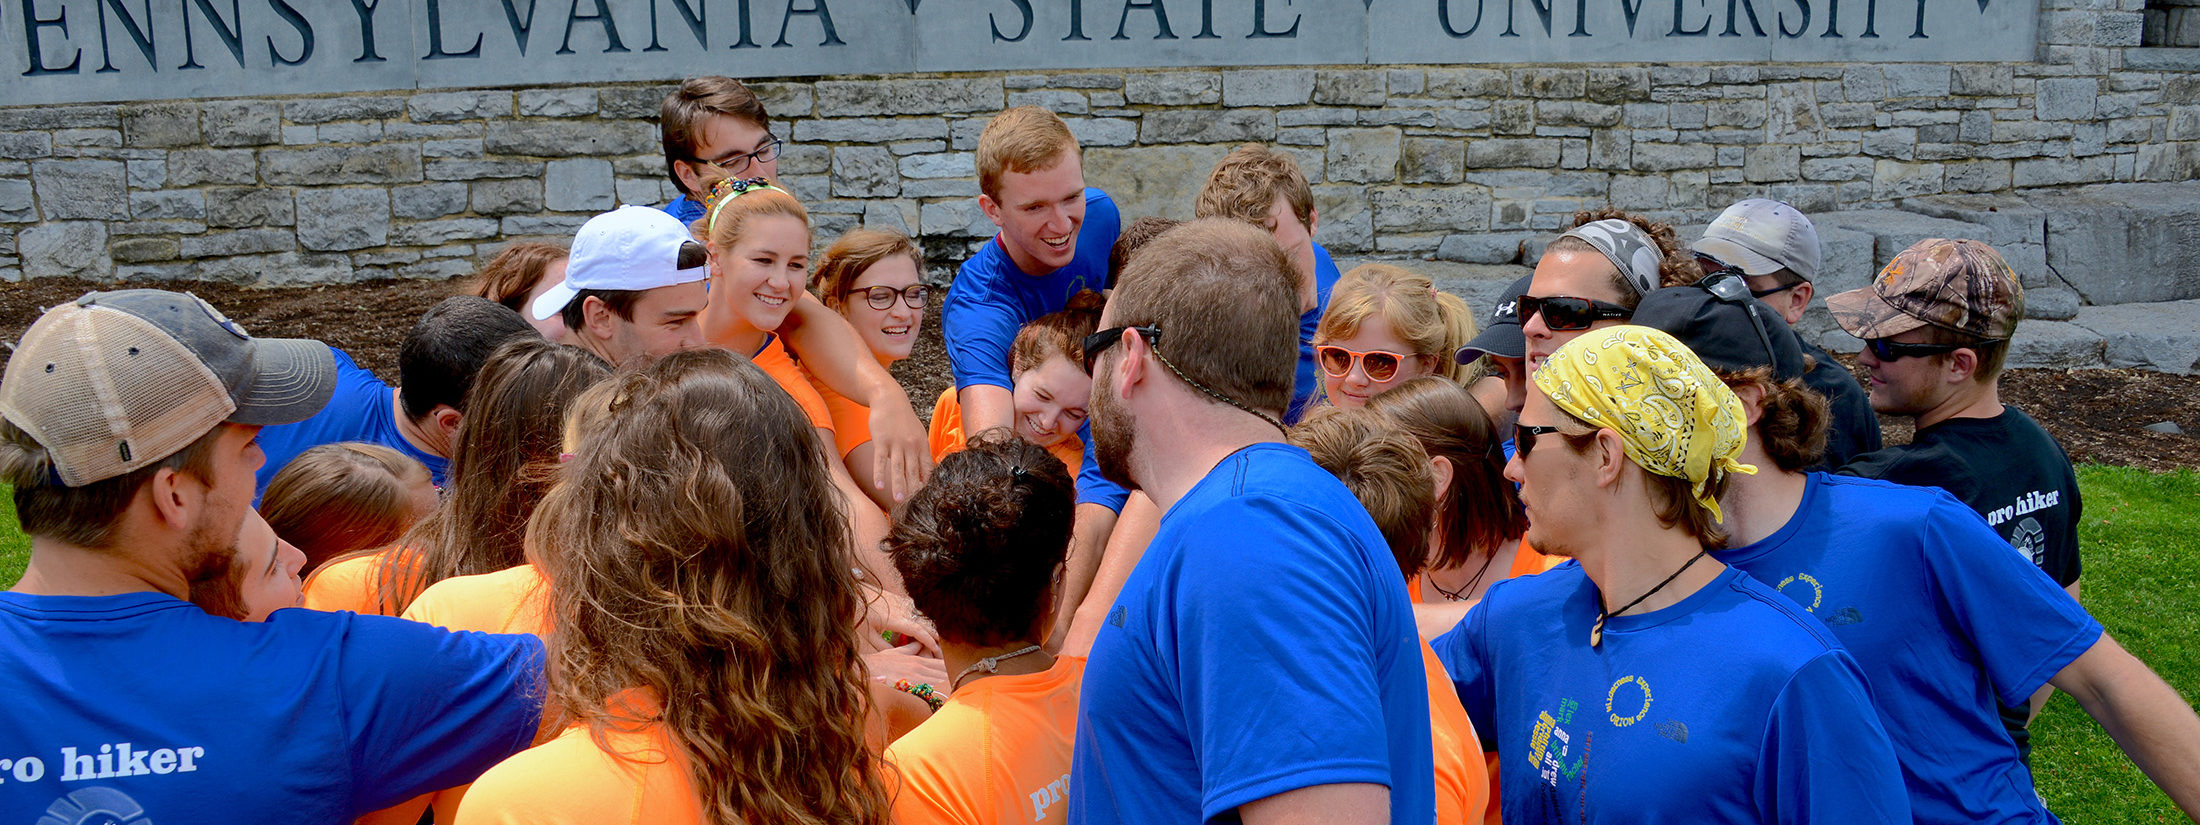 Students with hands in a circle next to The Pennsylvania State University sign